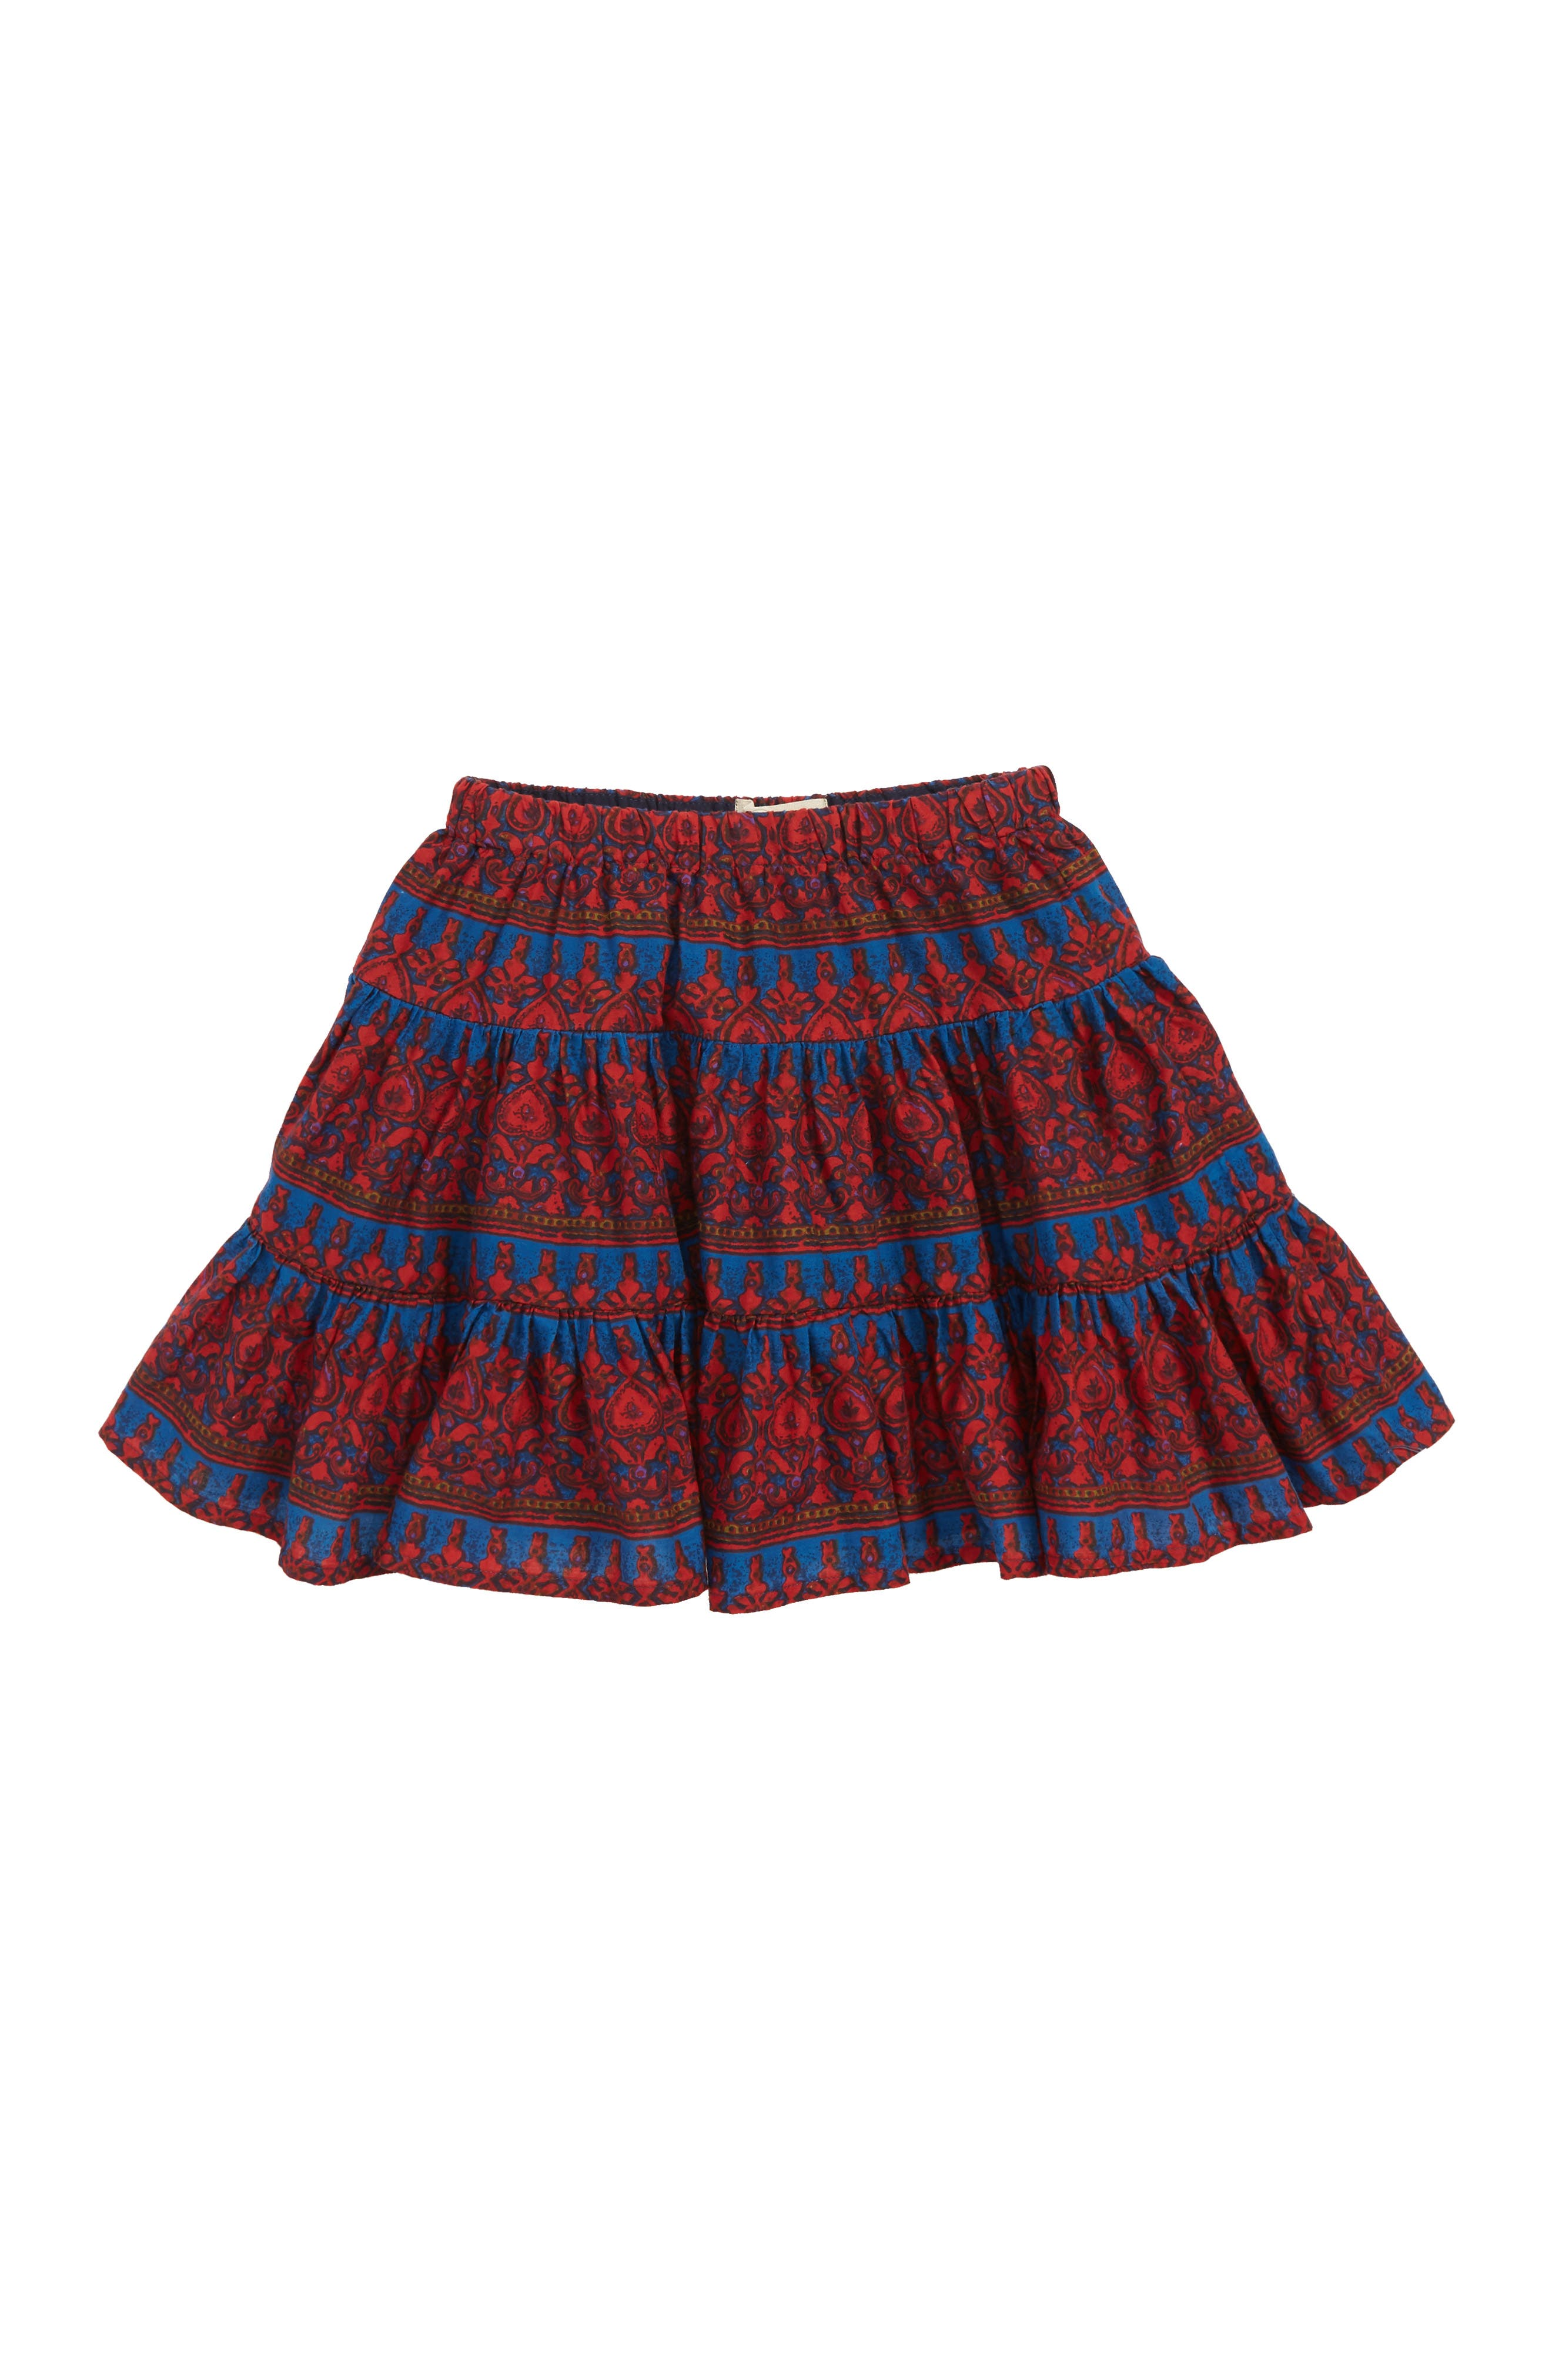 Peek Nicole Skirt,                         Main,                         color, 410